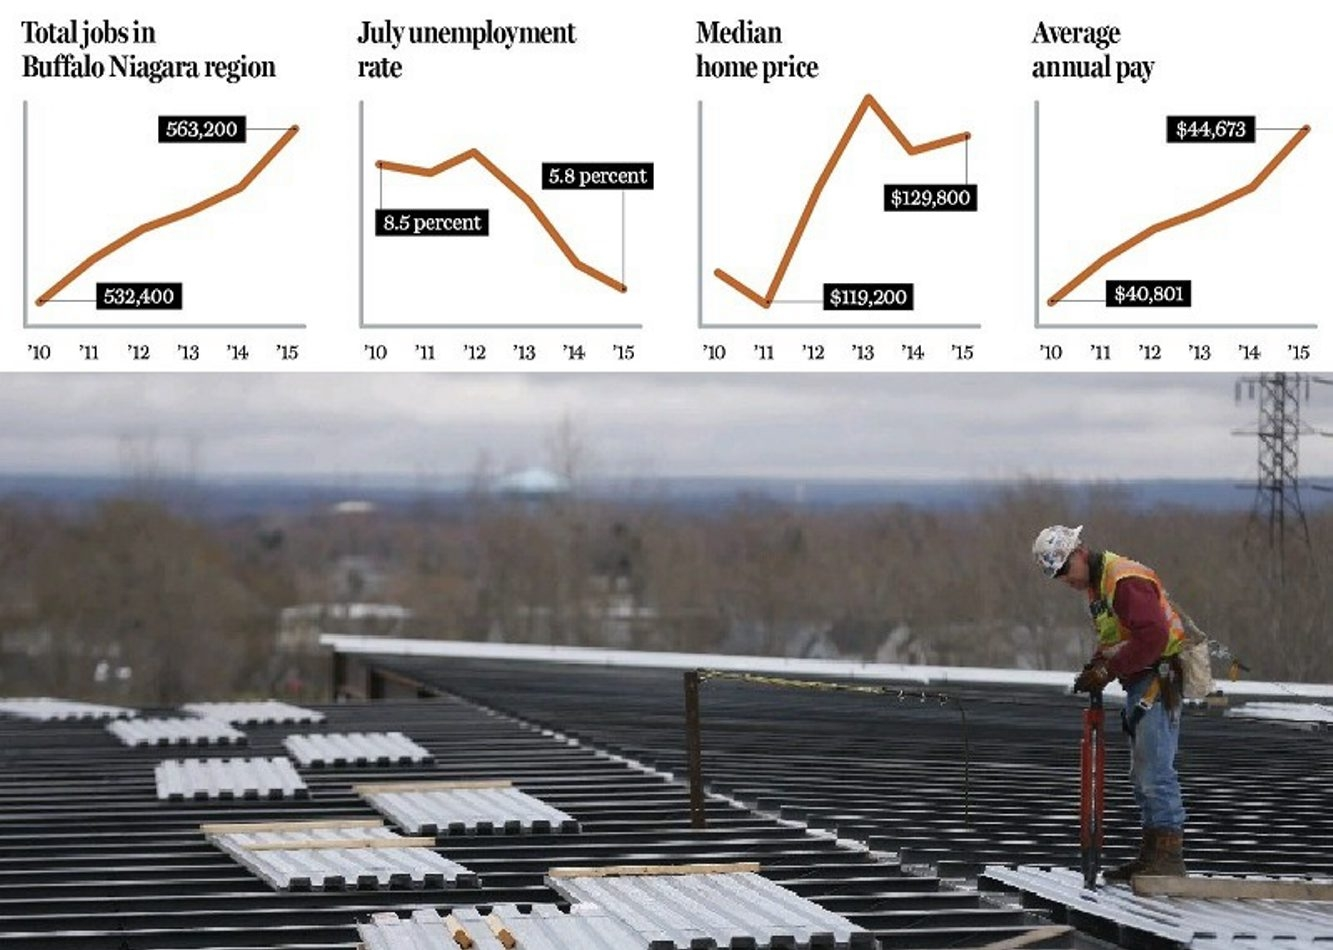 The 1 million square-foot Solar City plant rising in South Buffalo is expected to create almost 3,000 direct and indirect manufacturing jobs. (Photo by Robert Kirkham/Buffalo News)